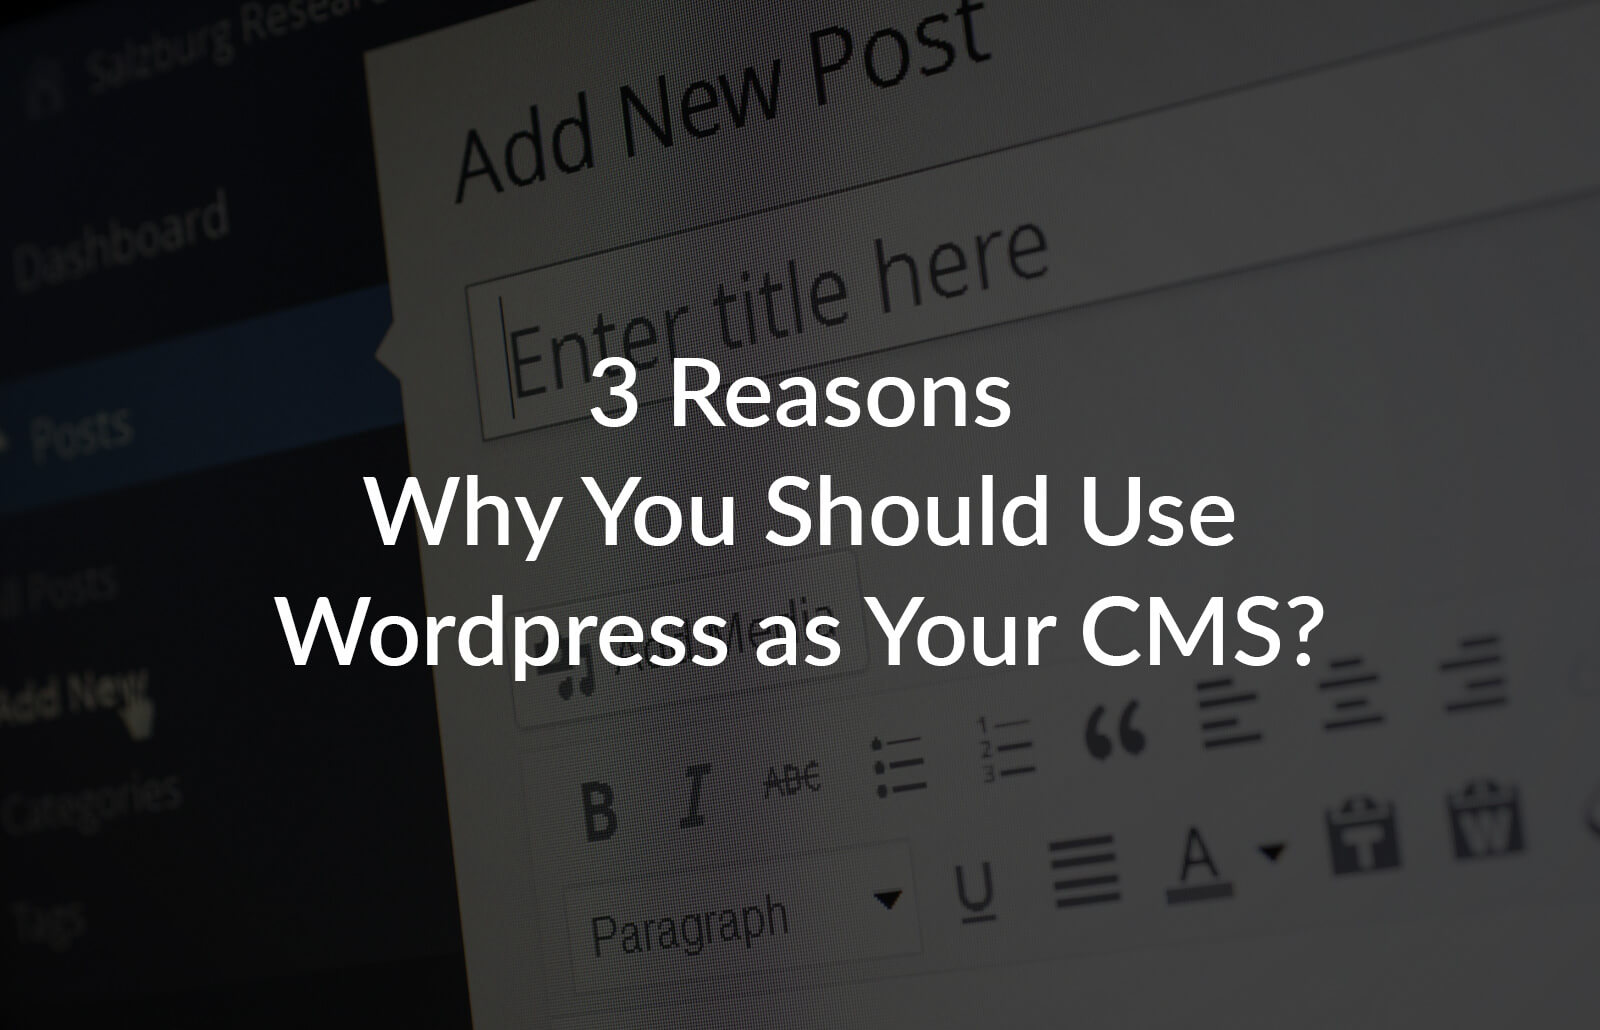 3 Reasons Why You Should Use WordPress as your CMS